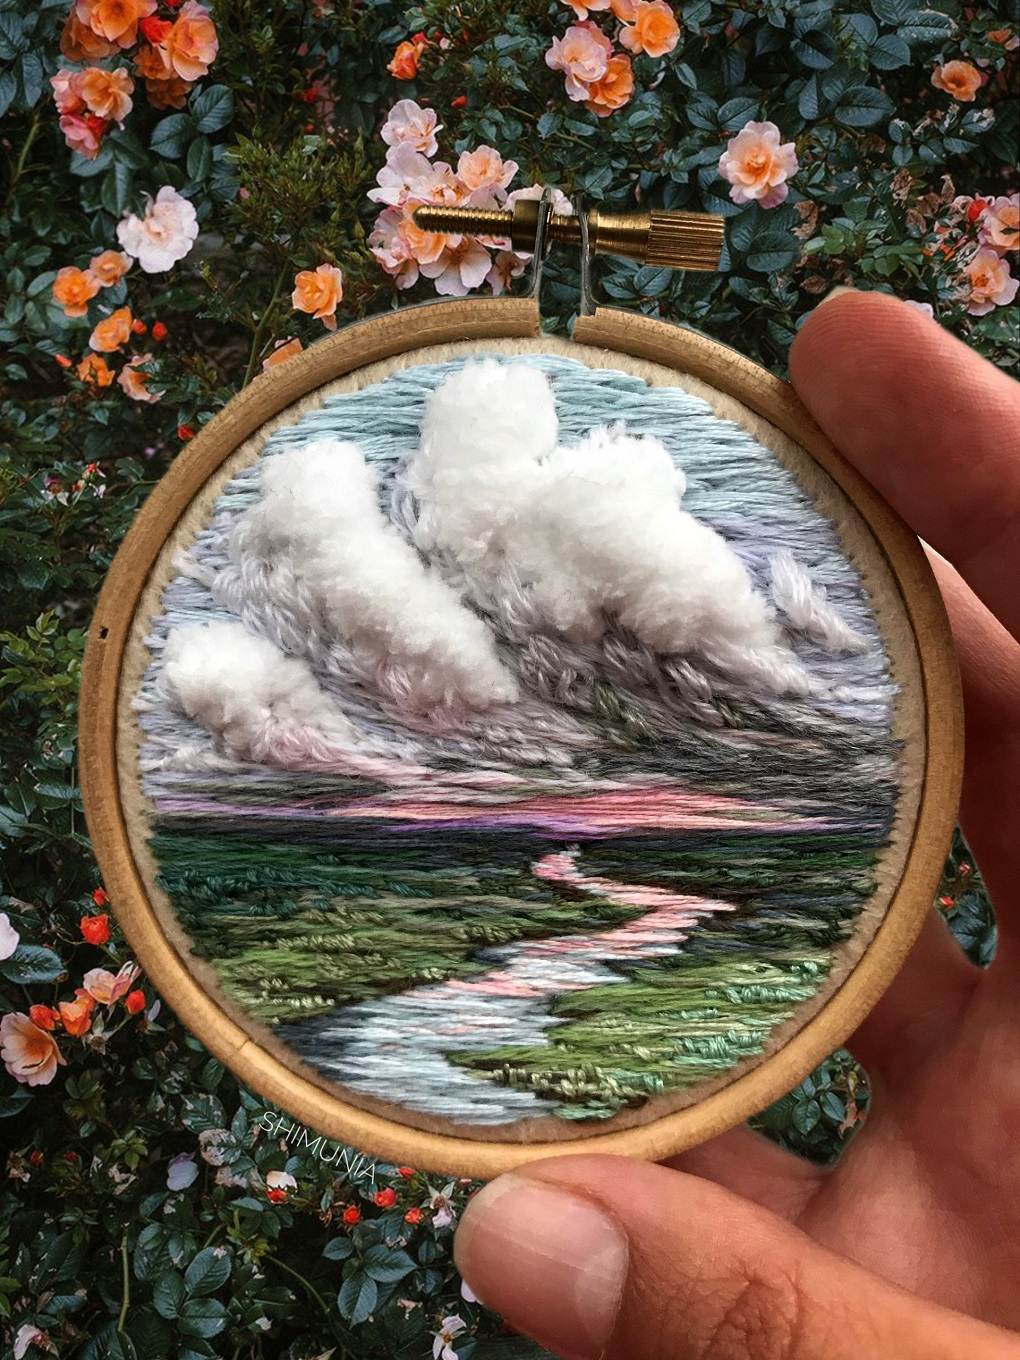 embroidery-6-960x1280@2x.jpg